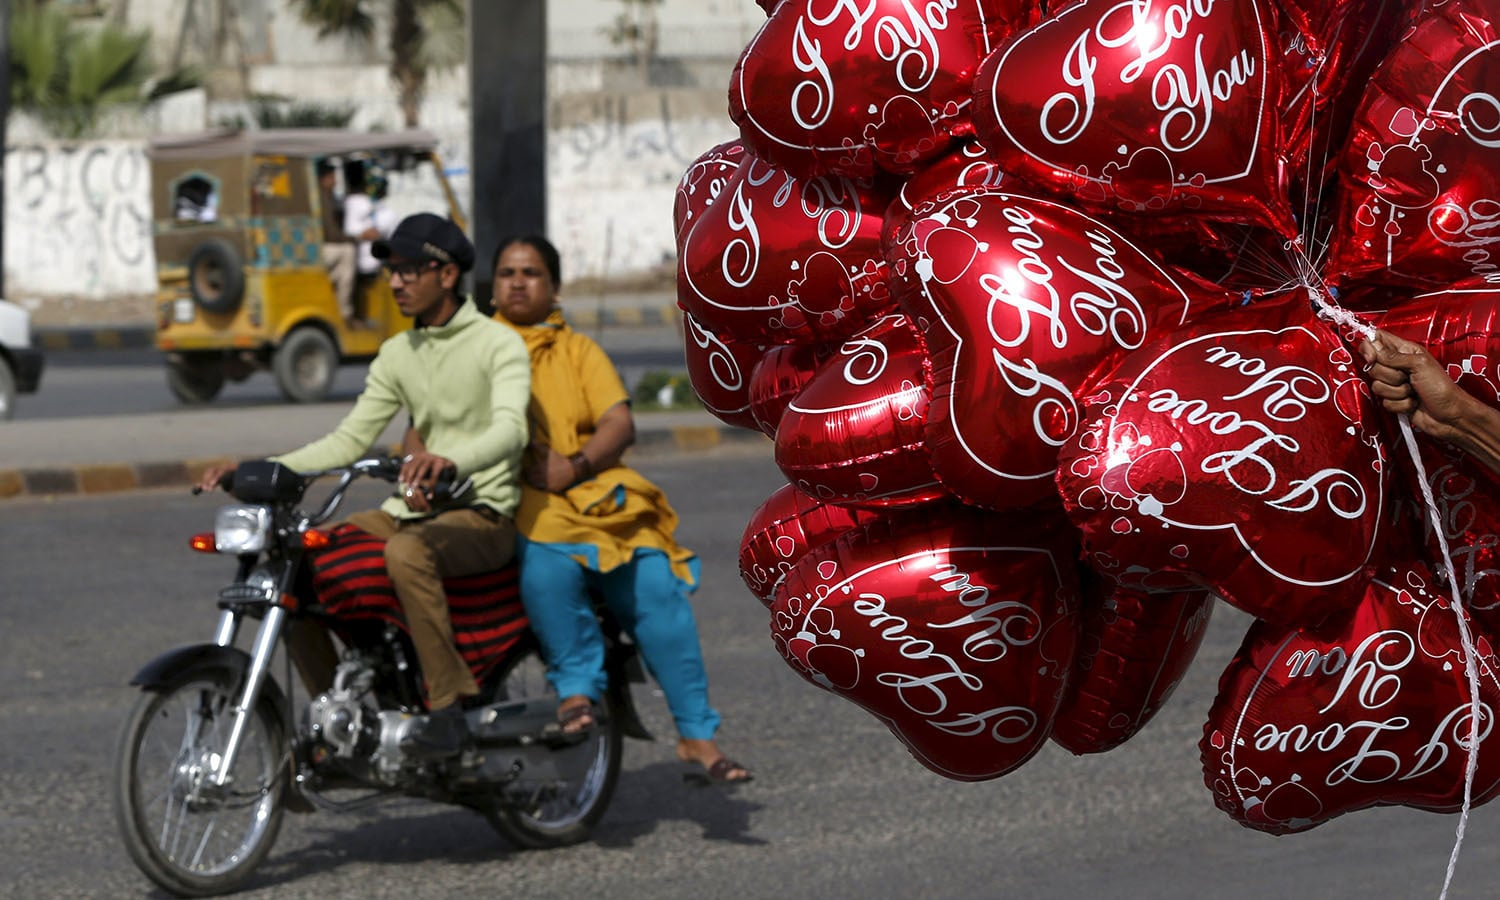 A couple on a motorcycle ride past a vendor selling heart-shaped balloons on Valentine's Day in Karachi.─Reuters